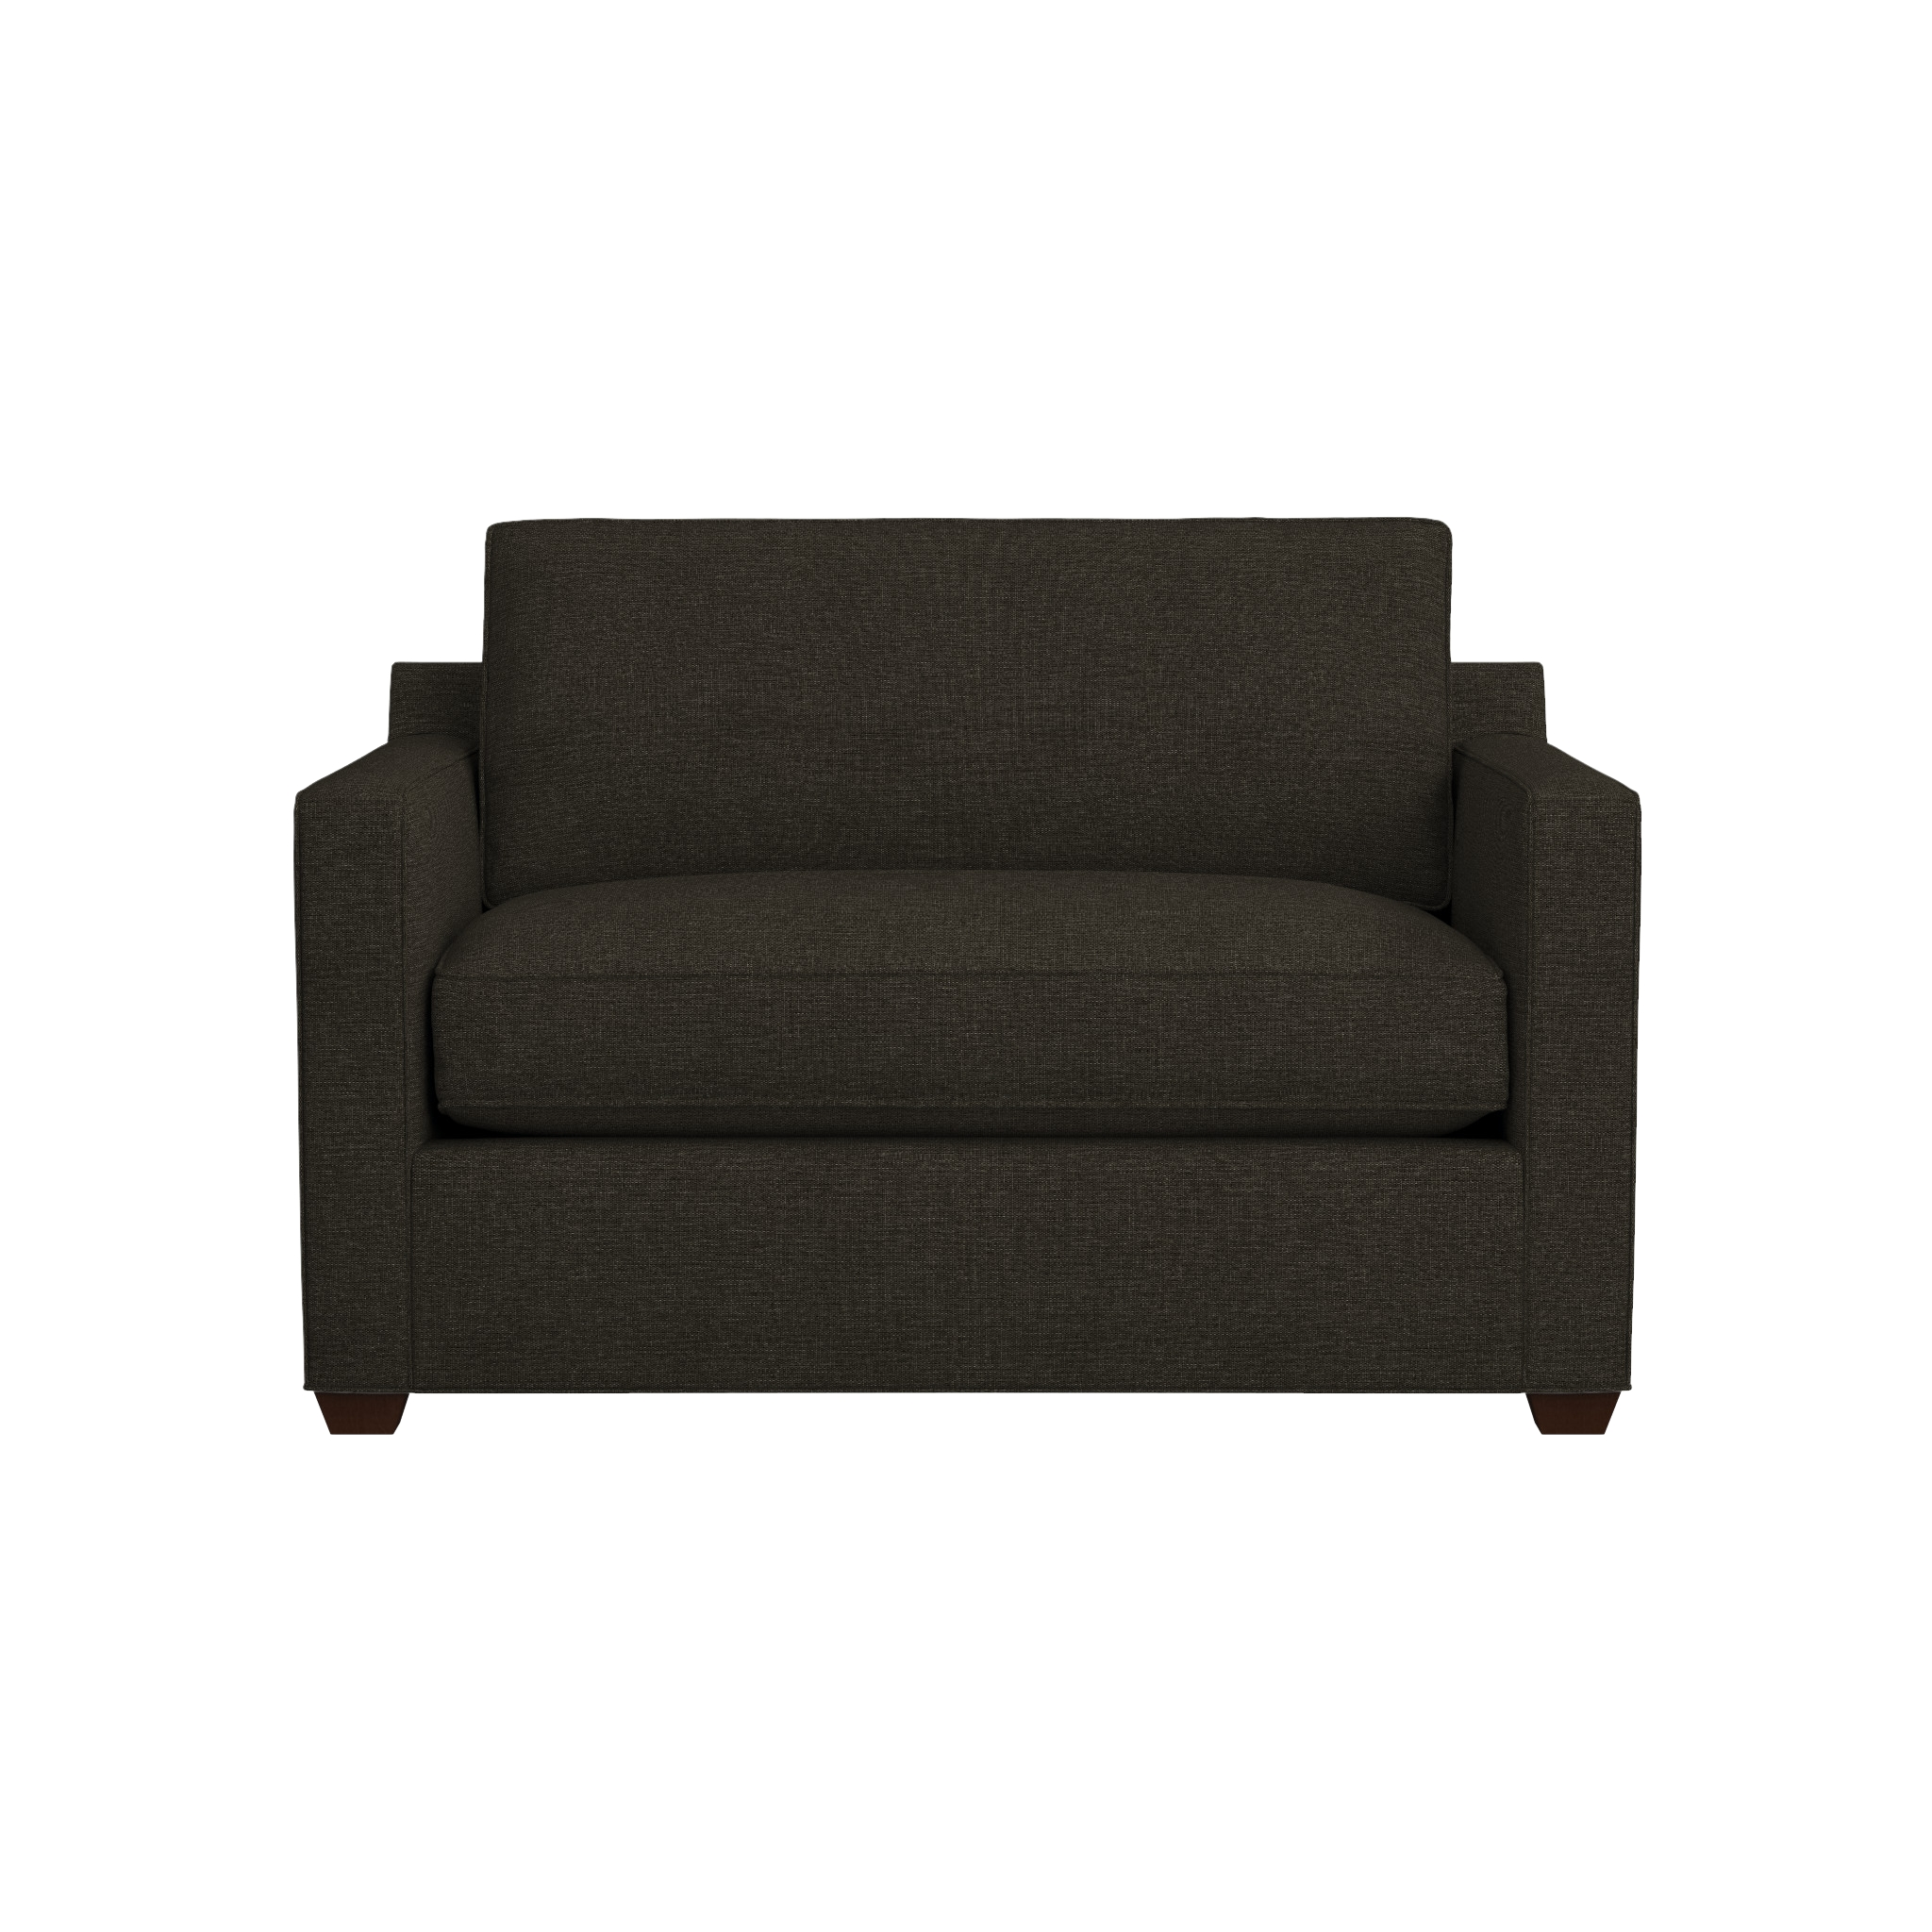 crate and barrel davis sofa leather high leg bed ideas sleepers explore 7 of